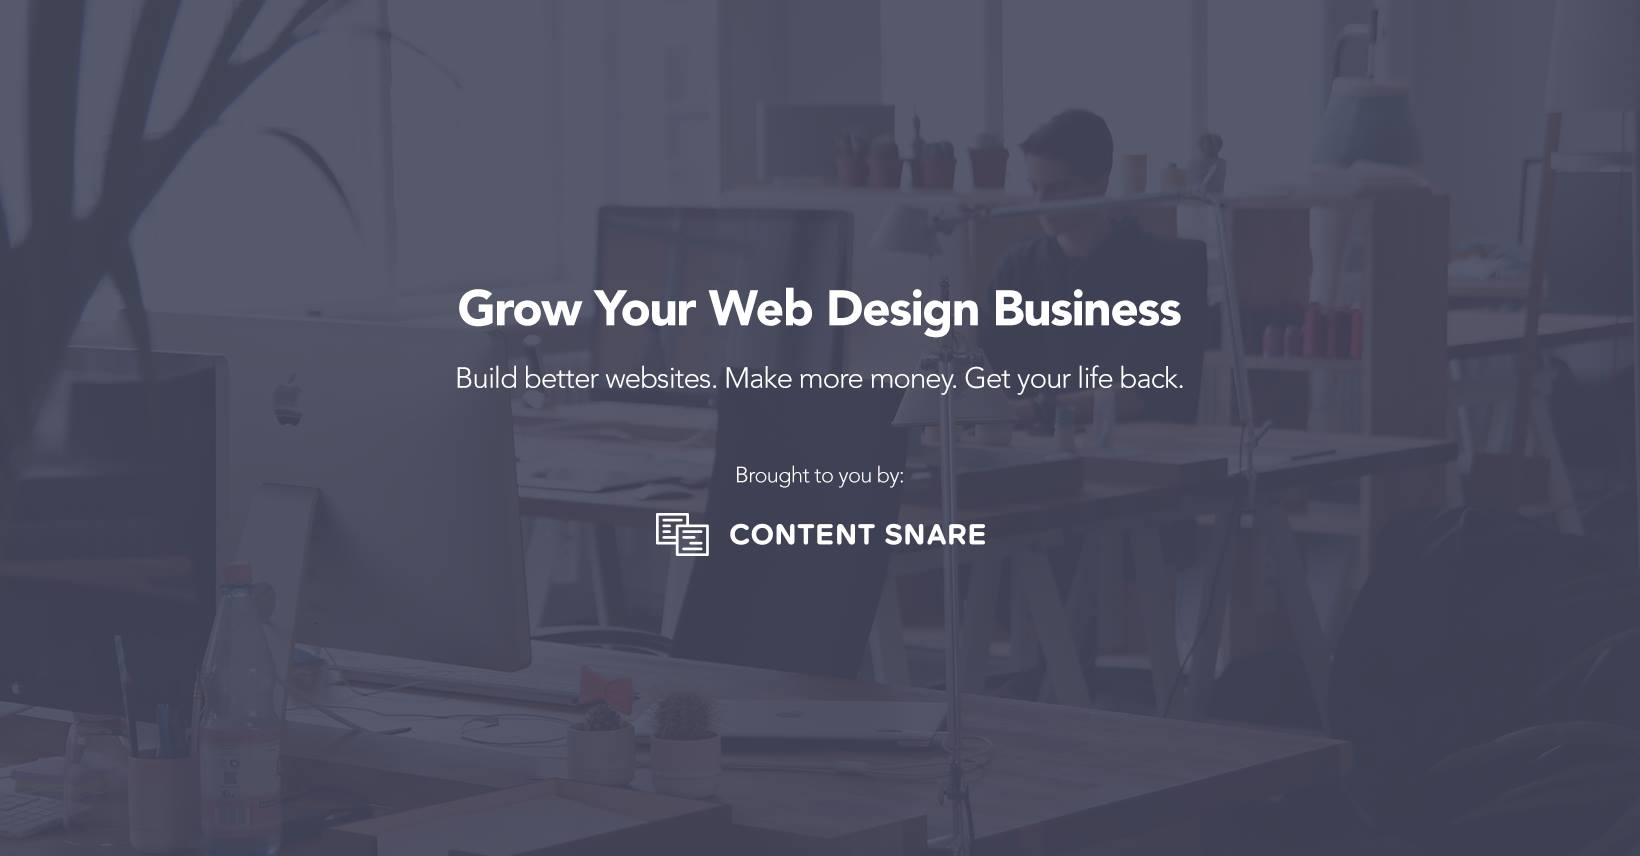 The 11 Facebook Groups for Web Designers Worth Joining 4